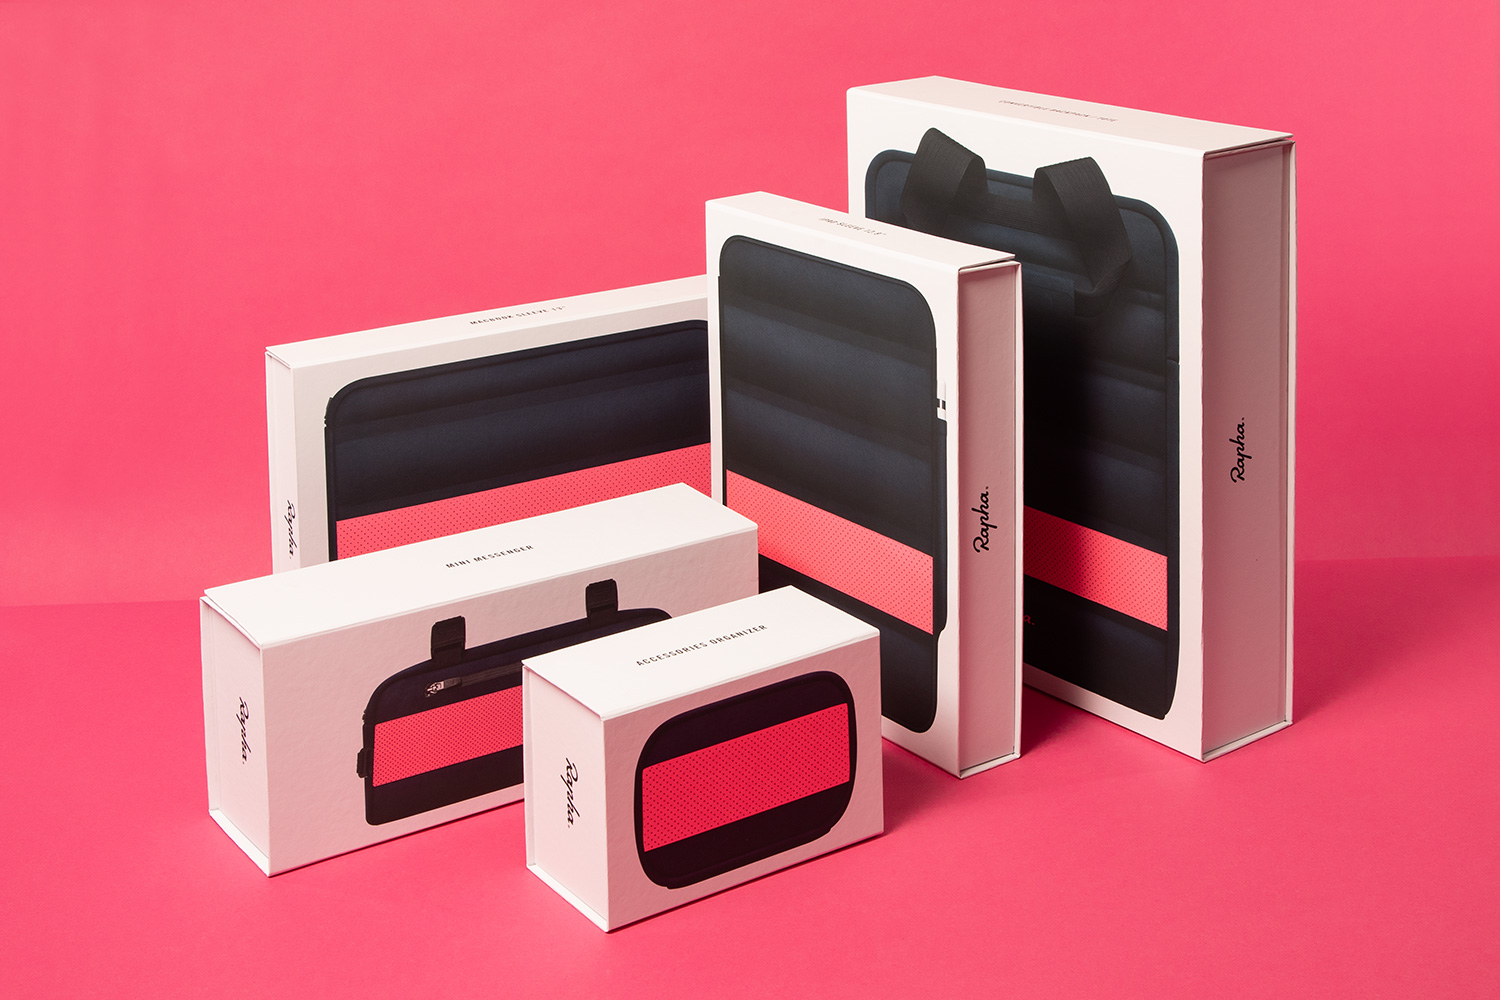 Progress Packaging Partners Rapha Apple Cycling Apparel Luxury Technology Ipone Ipad Laptop Luggage Mobile Phone Cell Store Bespoke Collapsible Retail